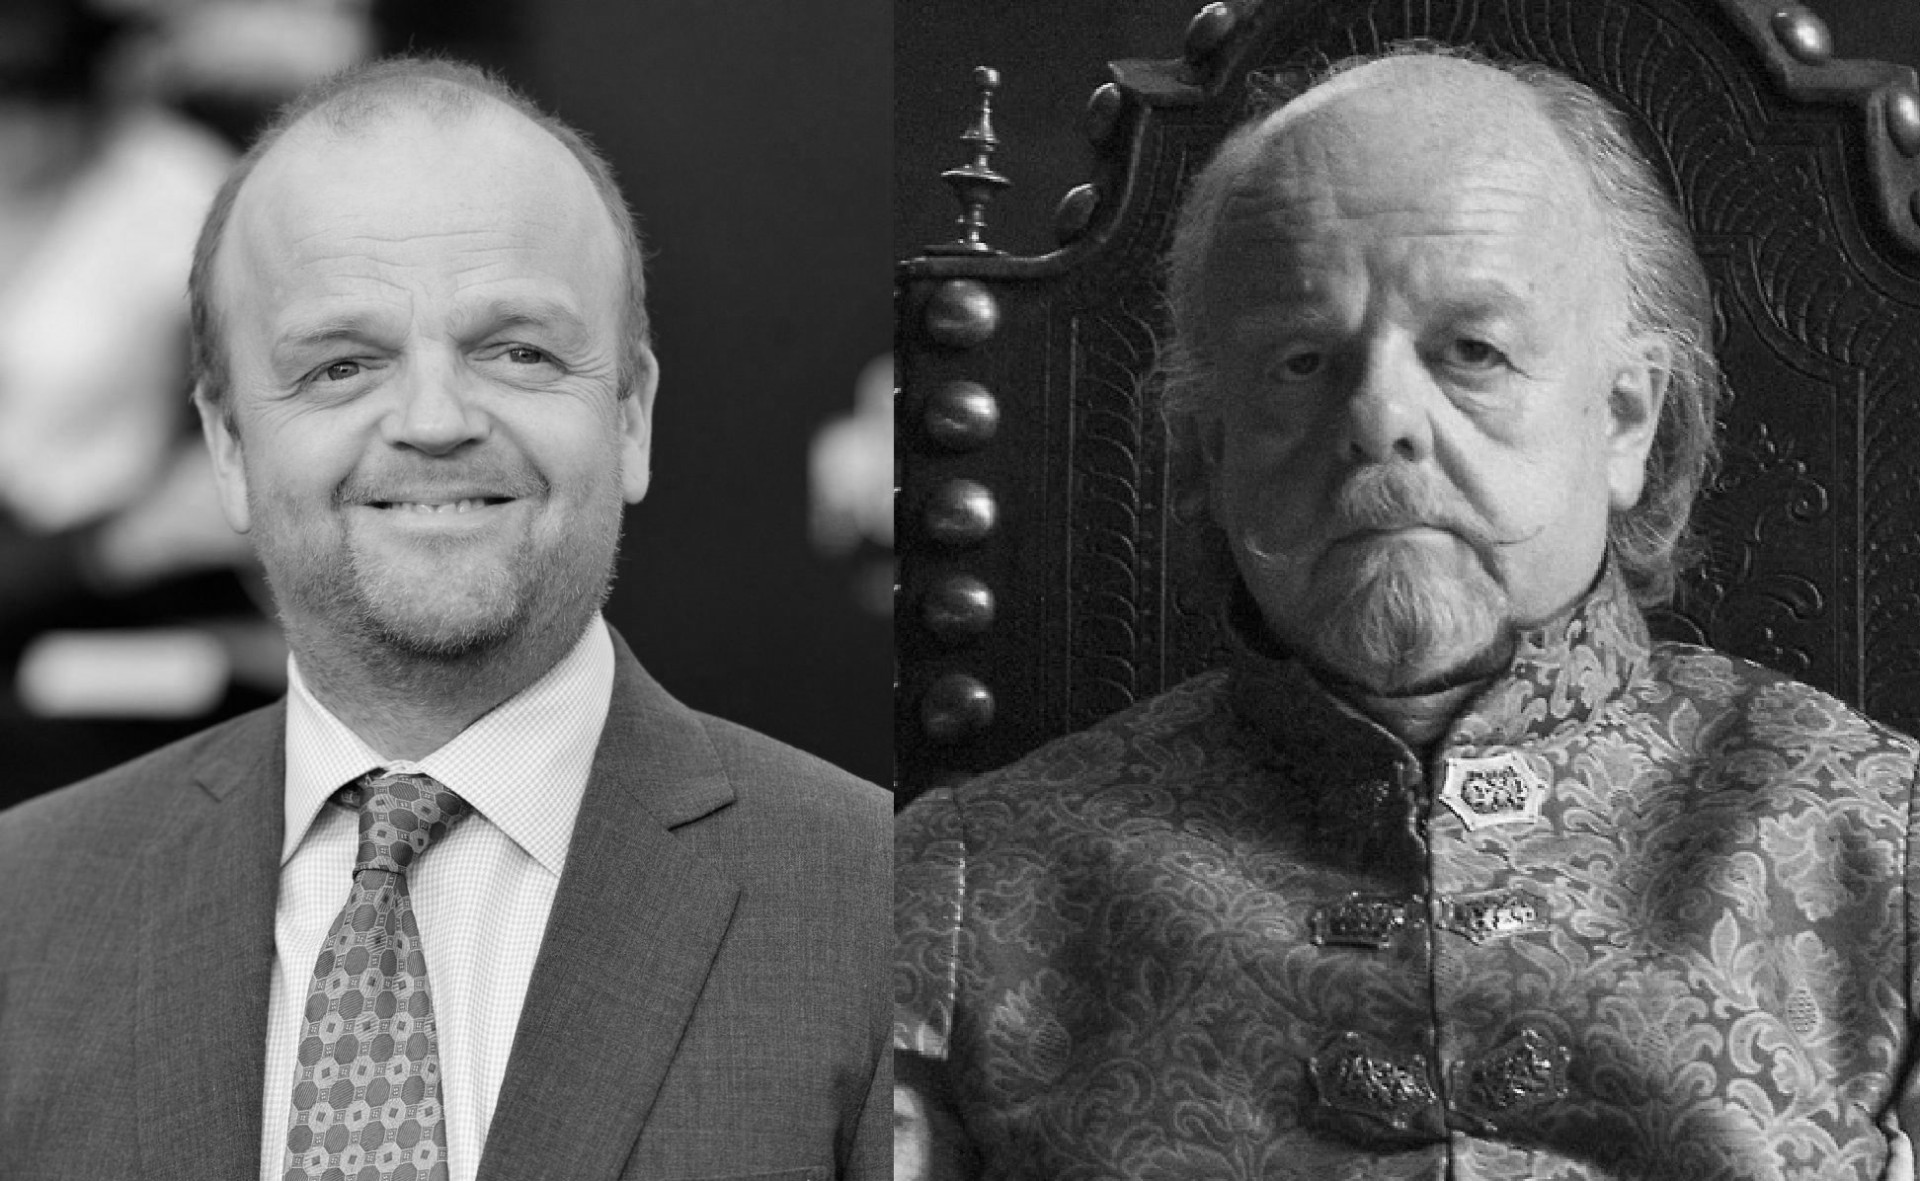 Toby Jones as Mace Tyrell the Lord Oaf of Highgarden